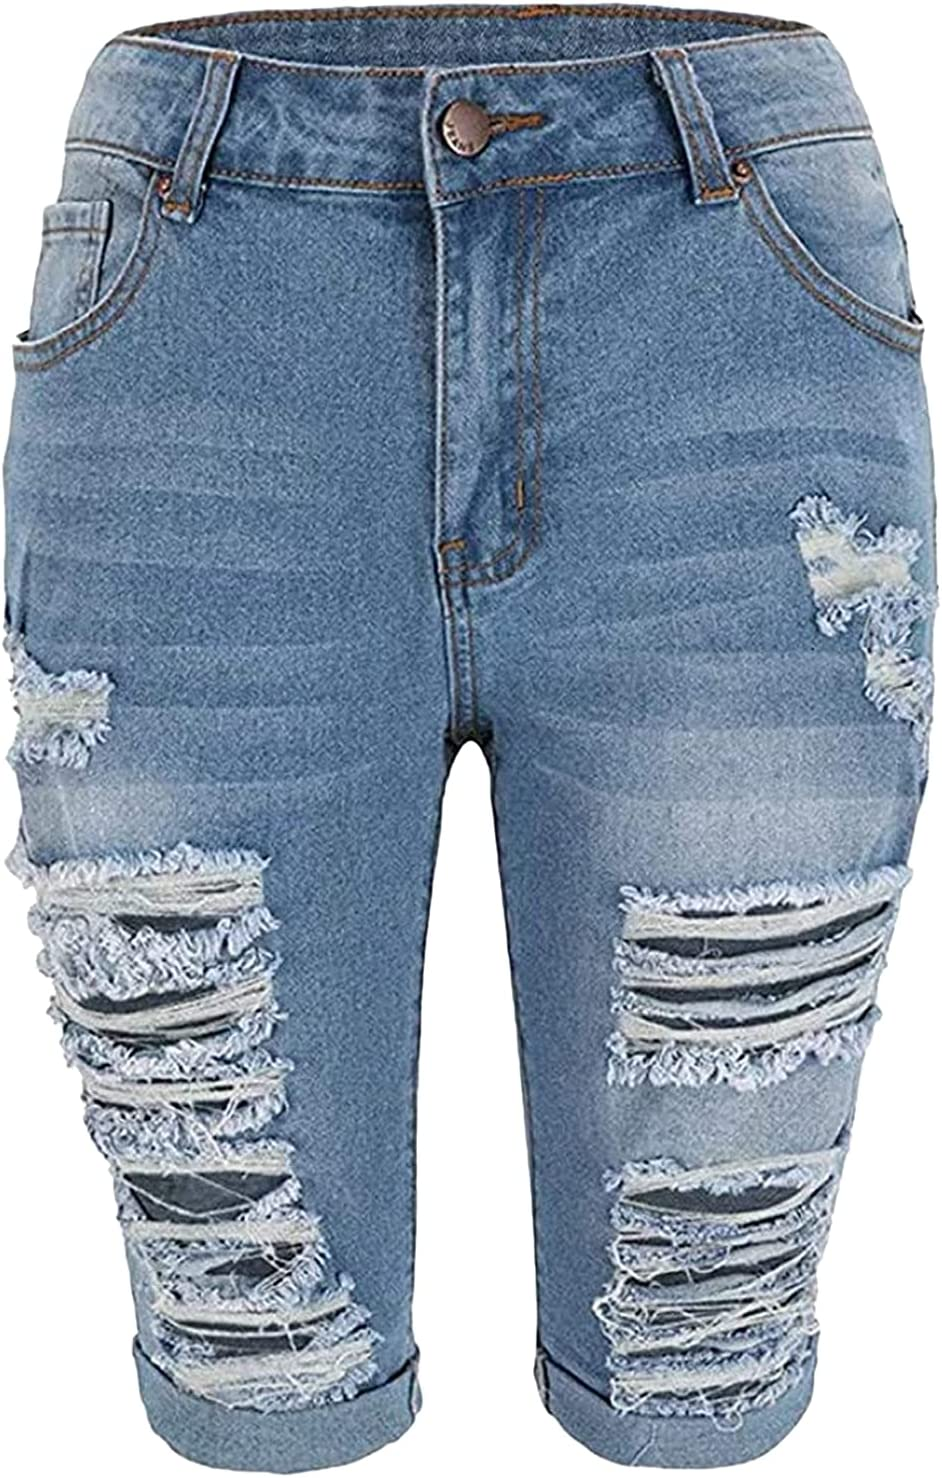 Women's Mid Rise Ripped Denim Short Destroyed Knee Length Washed Jeans Shorts Fashion Stretchy Rolled Hem Jean Short-pant (Dark Blue,Large)